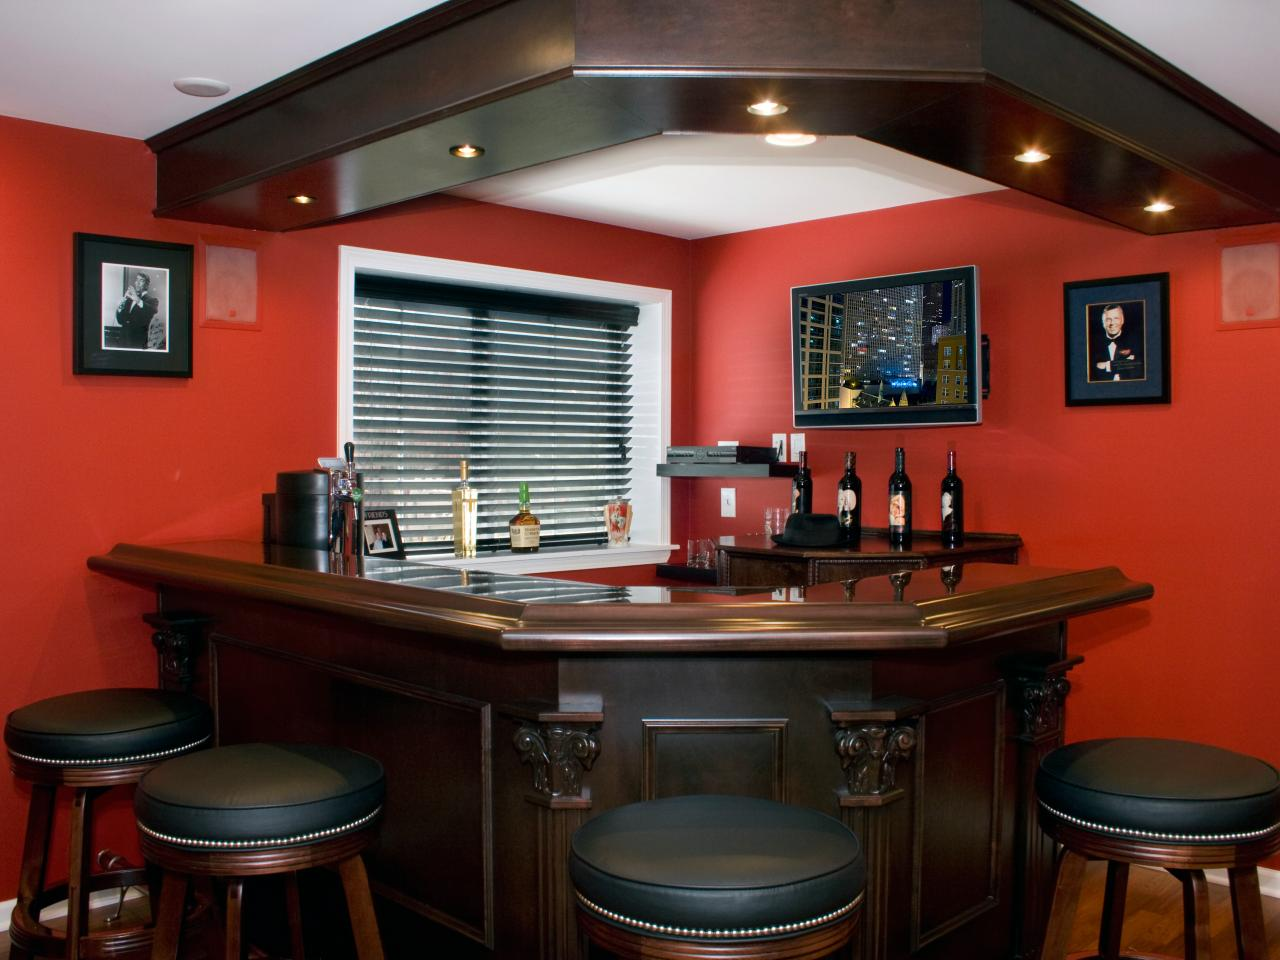 CI-Basement-Ideas-red-bar-basement_s4x3.jpg.rend.hgtvcom.1280.960.jpeg